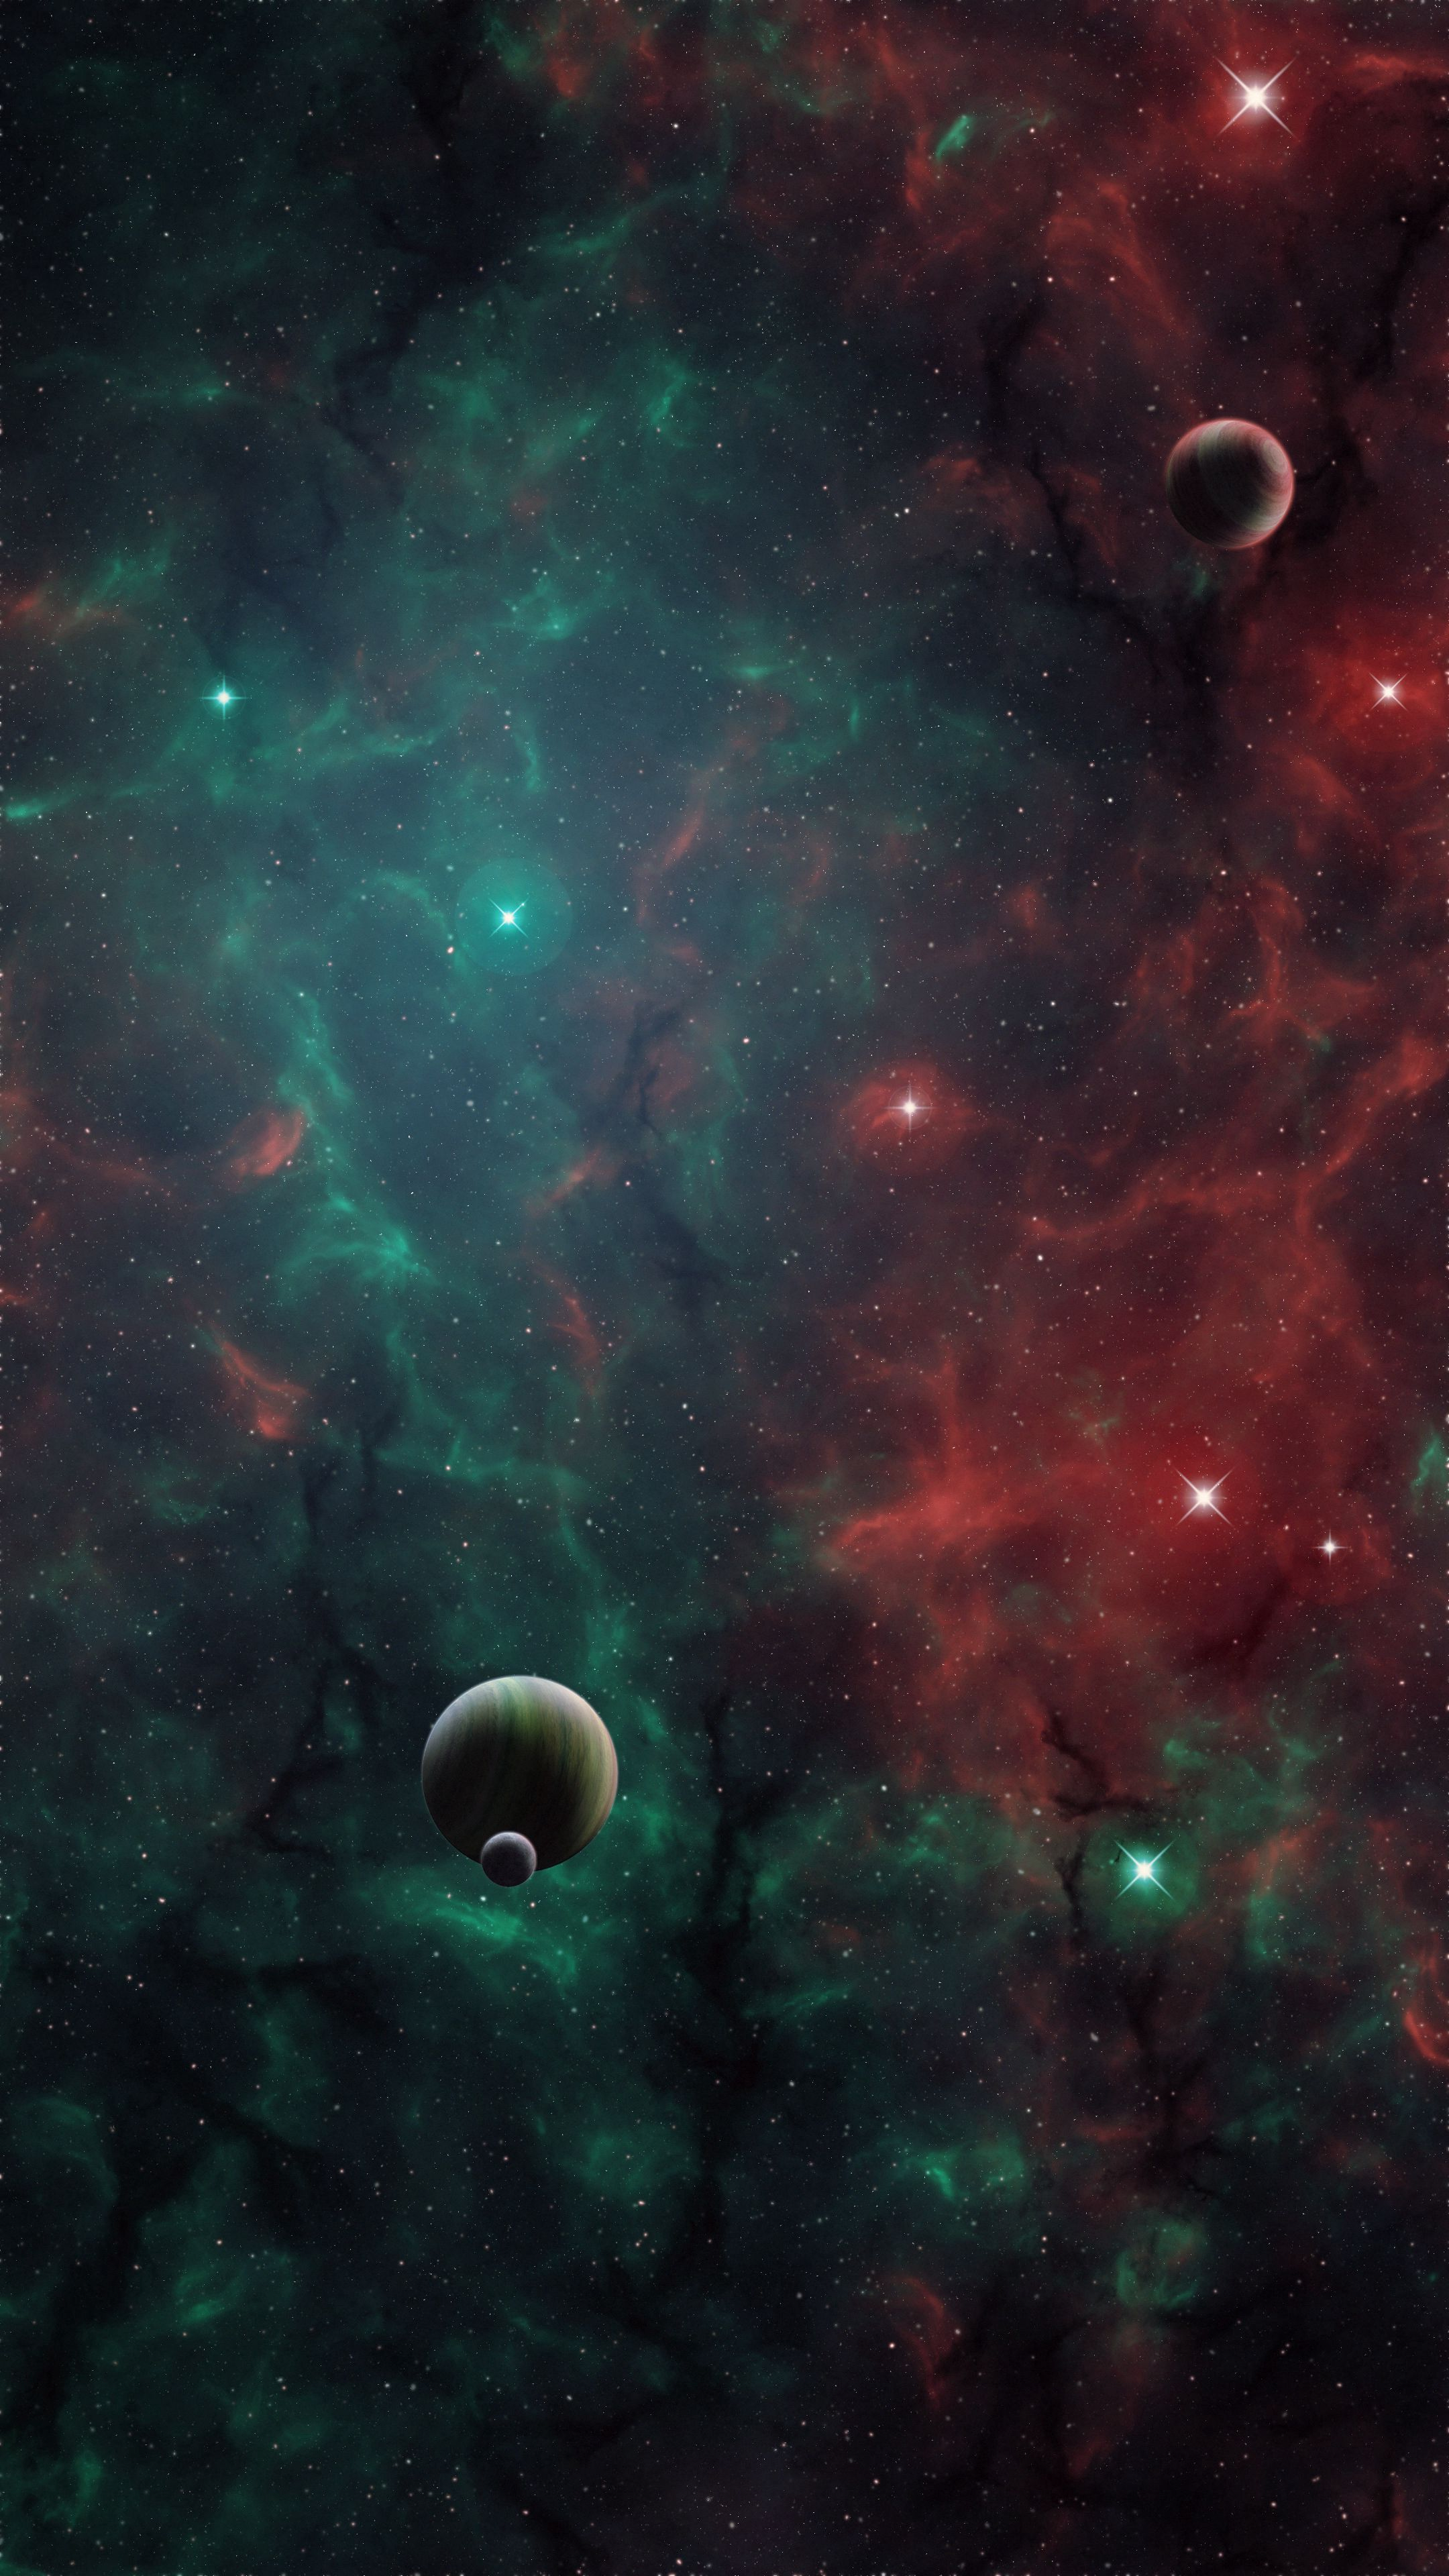 69315 download wallpaper Universe, Galaxy, Planets, Art, Open Space screensavers and pictures for free